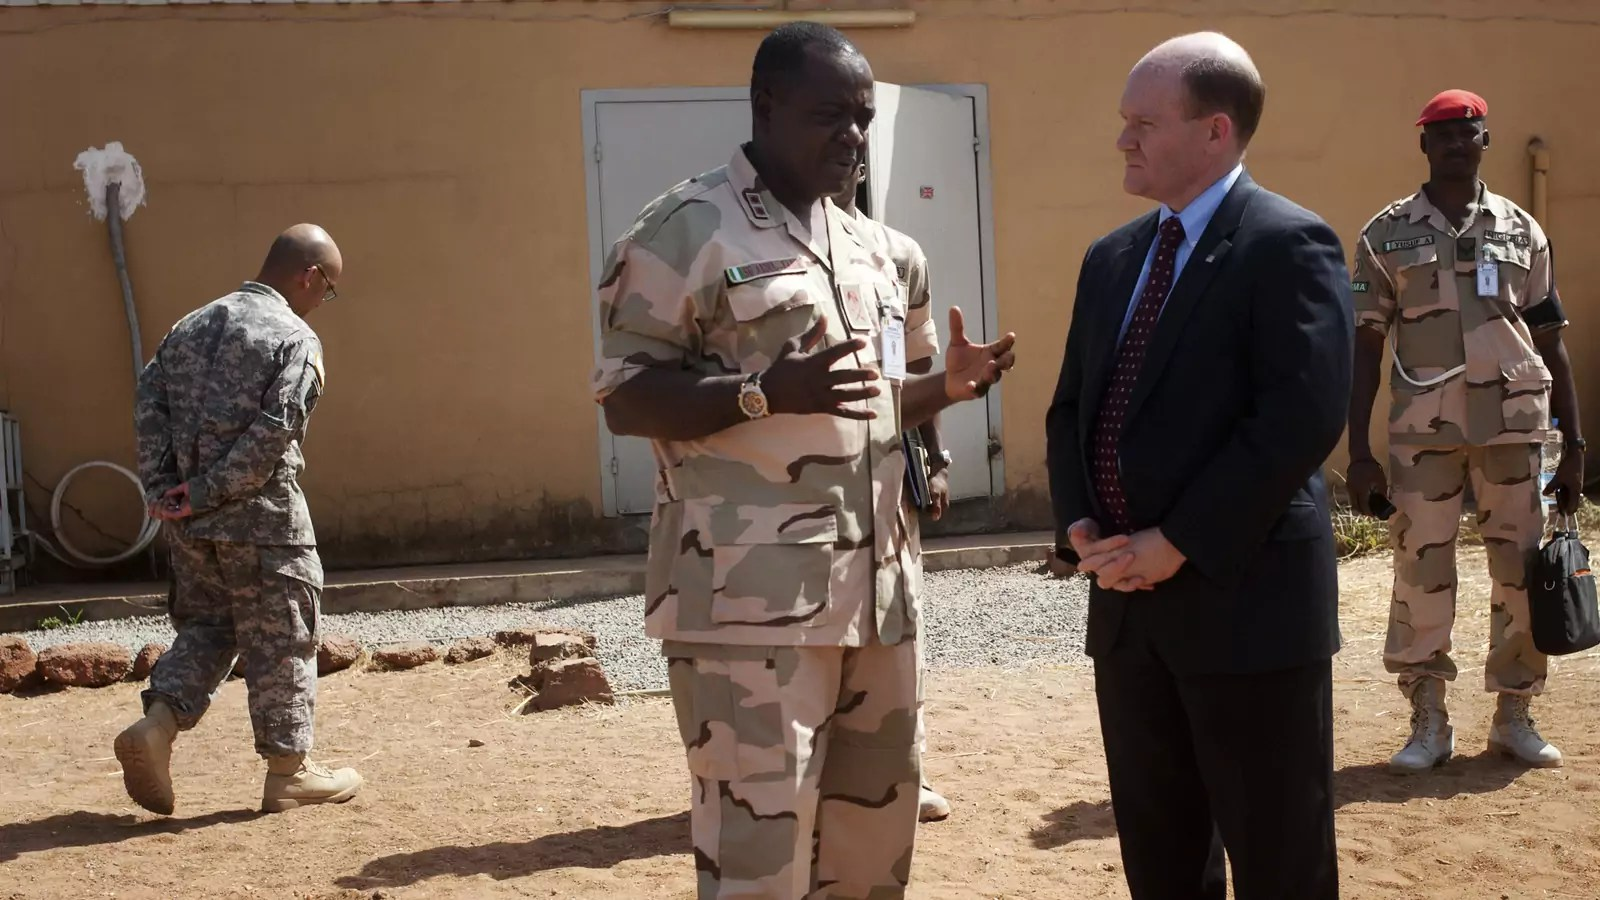 U.S. Senator Chris Coons (C) chats with Force Commander Major General Shehu Abdulkadir on a previous CODEL during President Obama's administration, in Bamako, Mali, February 18, 2013.